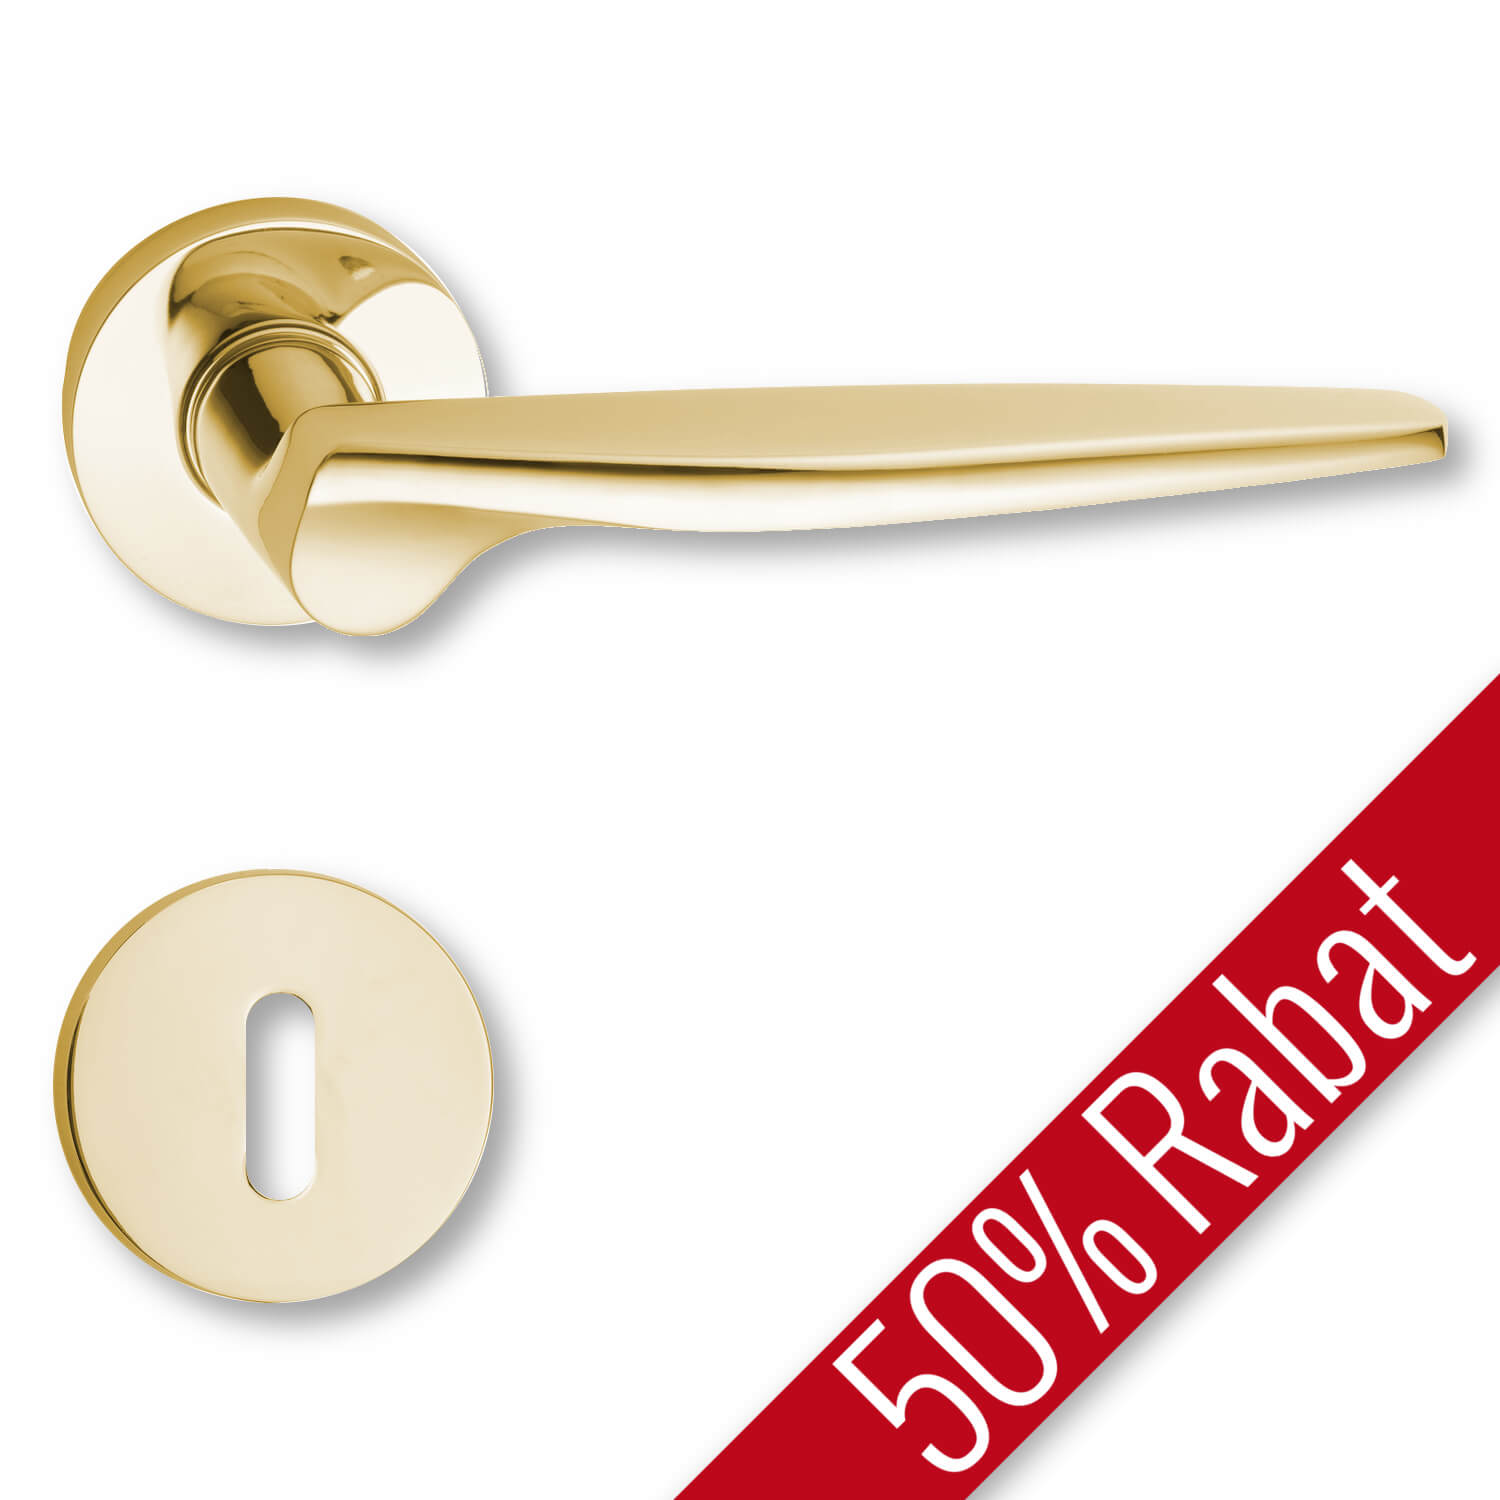 Door Handle Interior Polished Brass Rosette And Escutcheon The 1950s Promotional Price